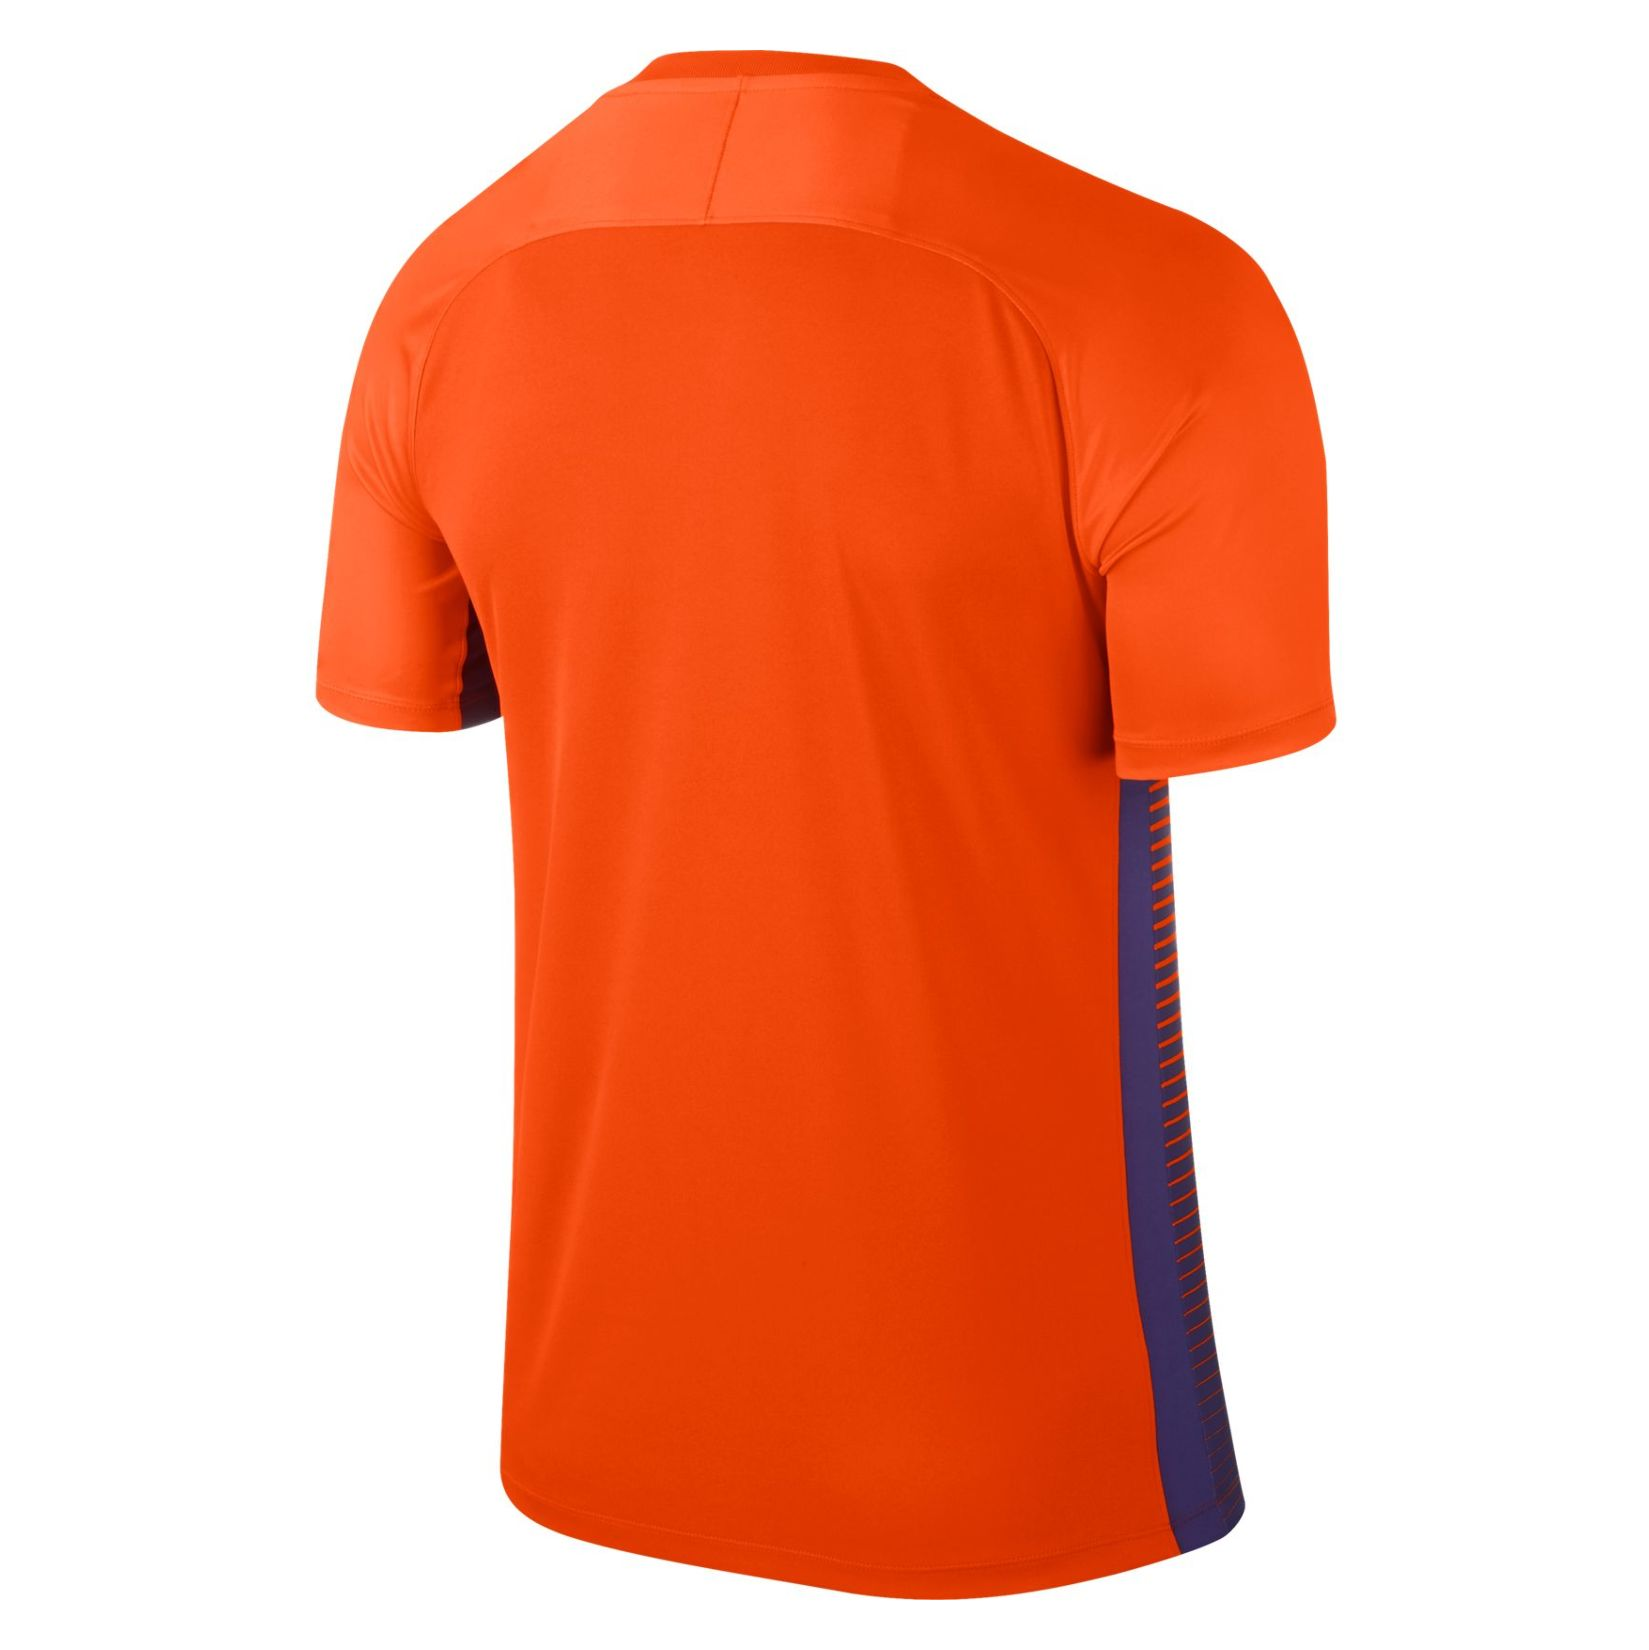 Nike Precision Iv Short Sleeve Shirt Safety Orange-Court Purple-Black